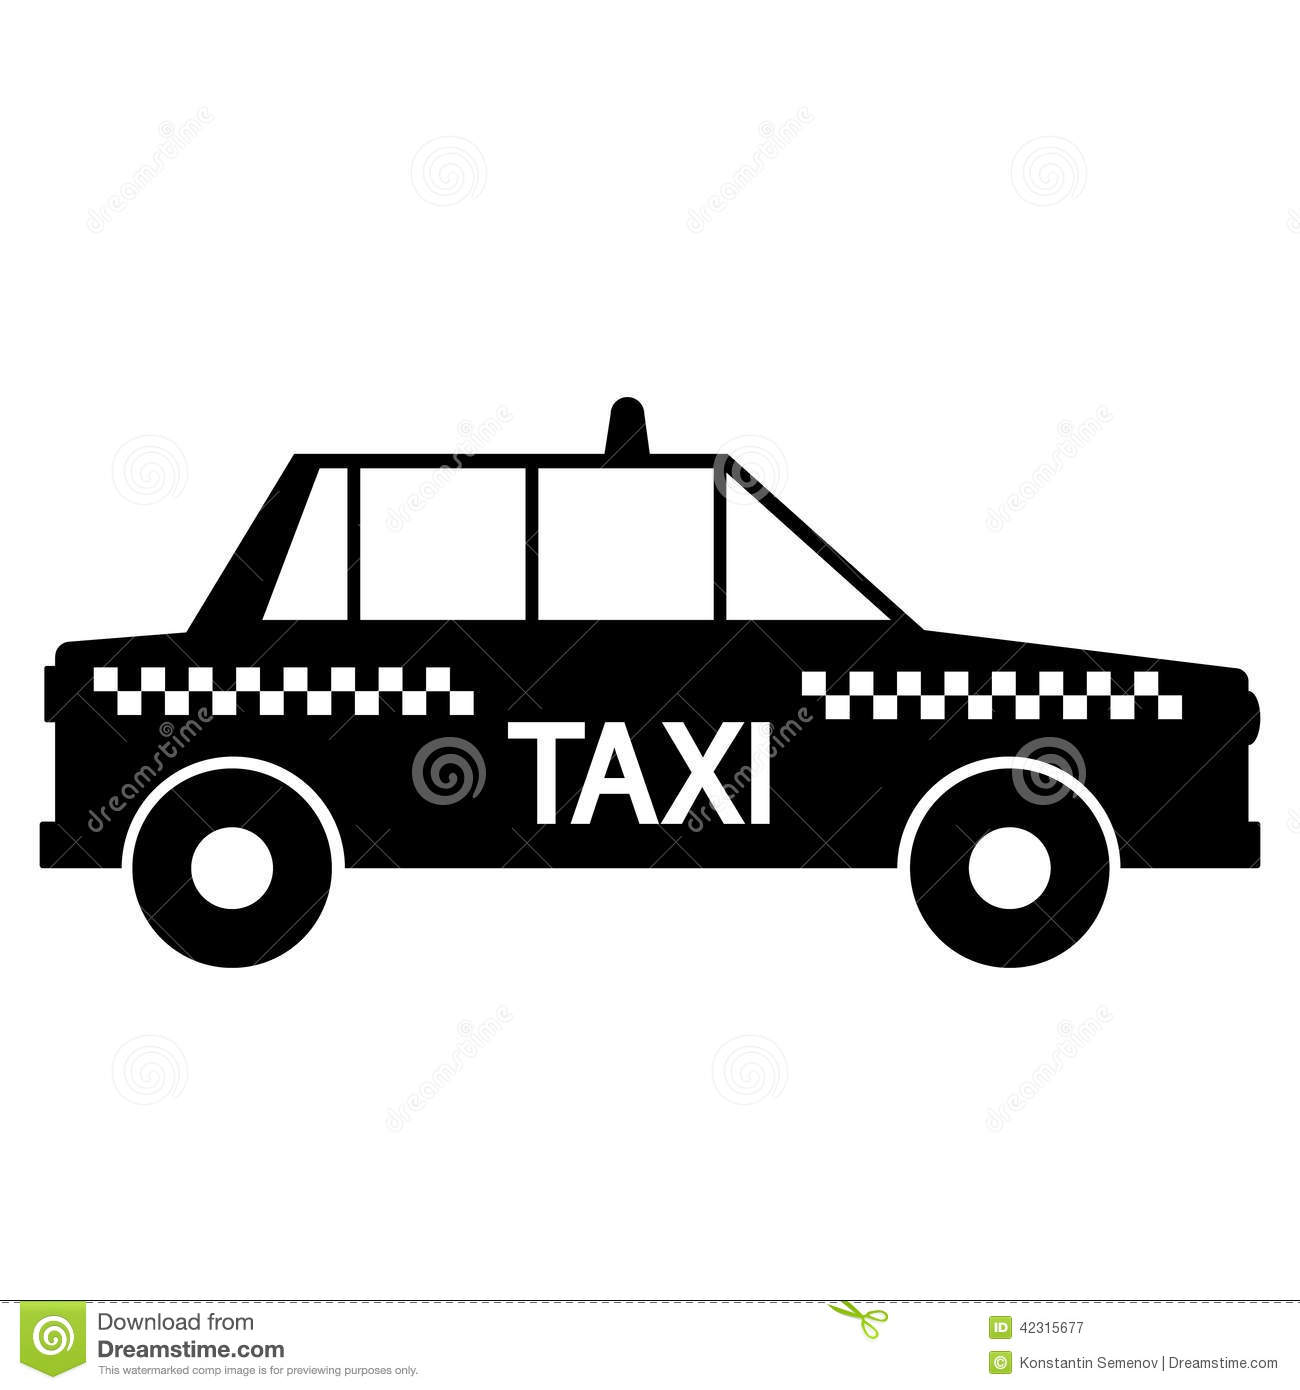 taxi car icon stock vector image of headlight object. Black Bedroom Furniture Sets. Home Design Ideas